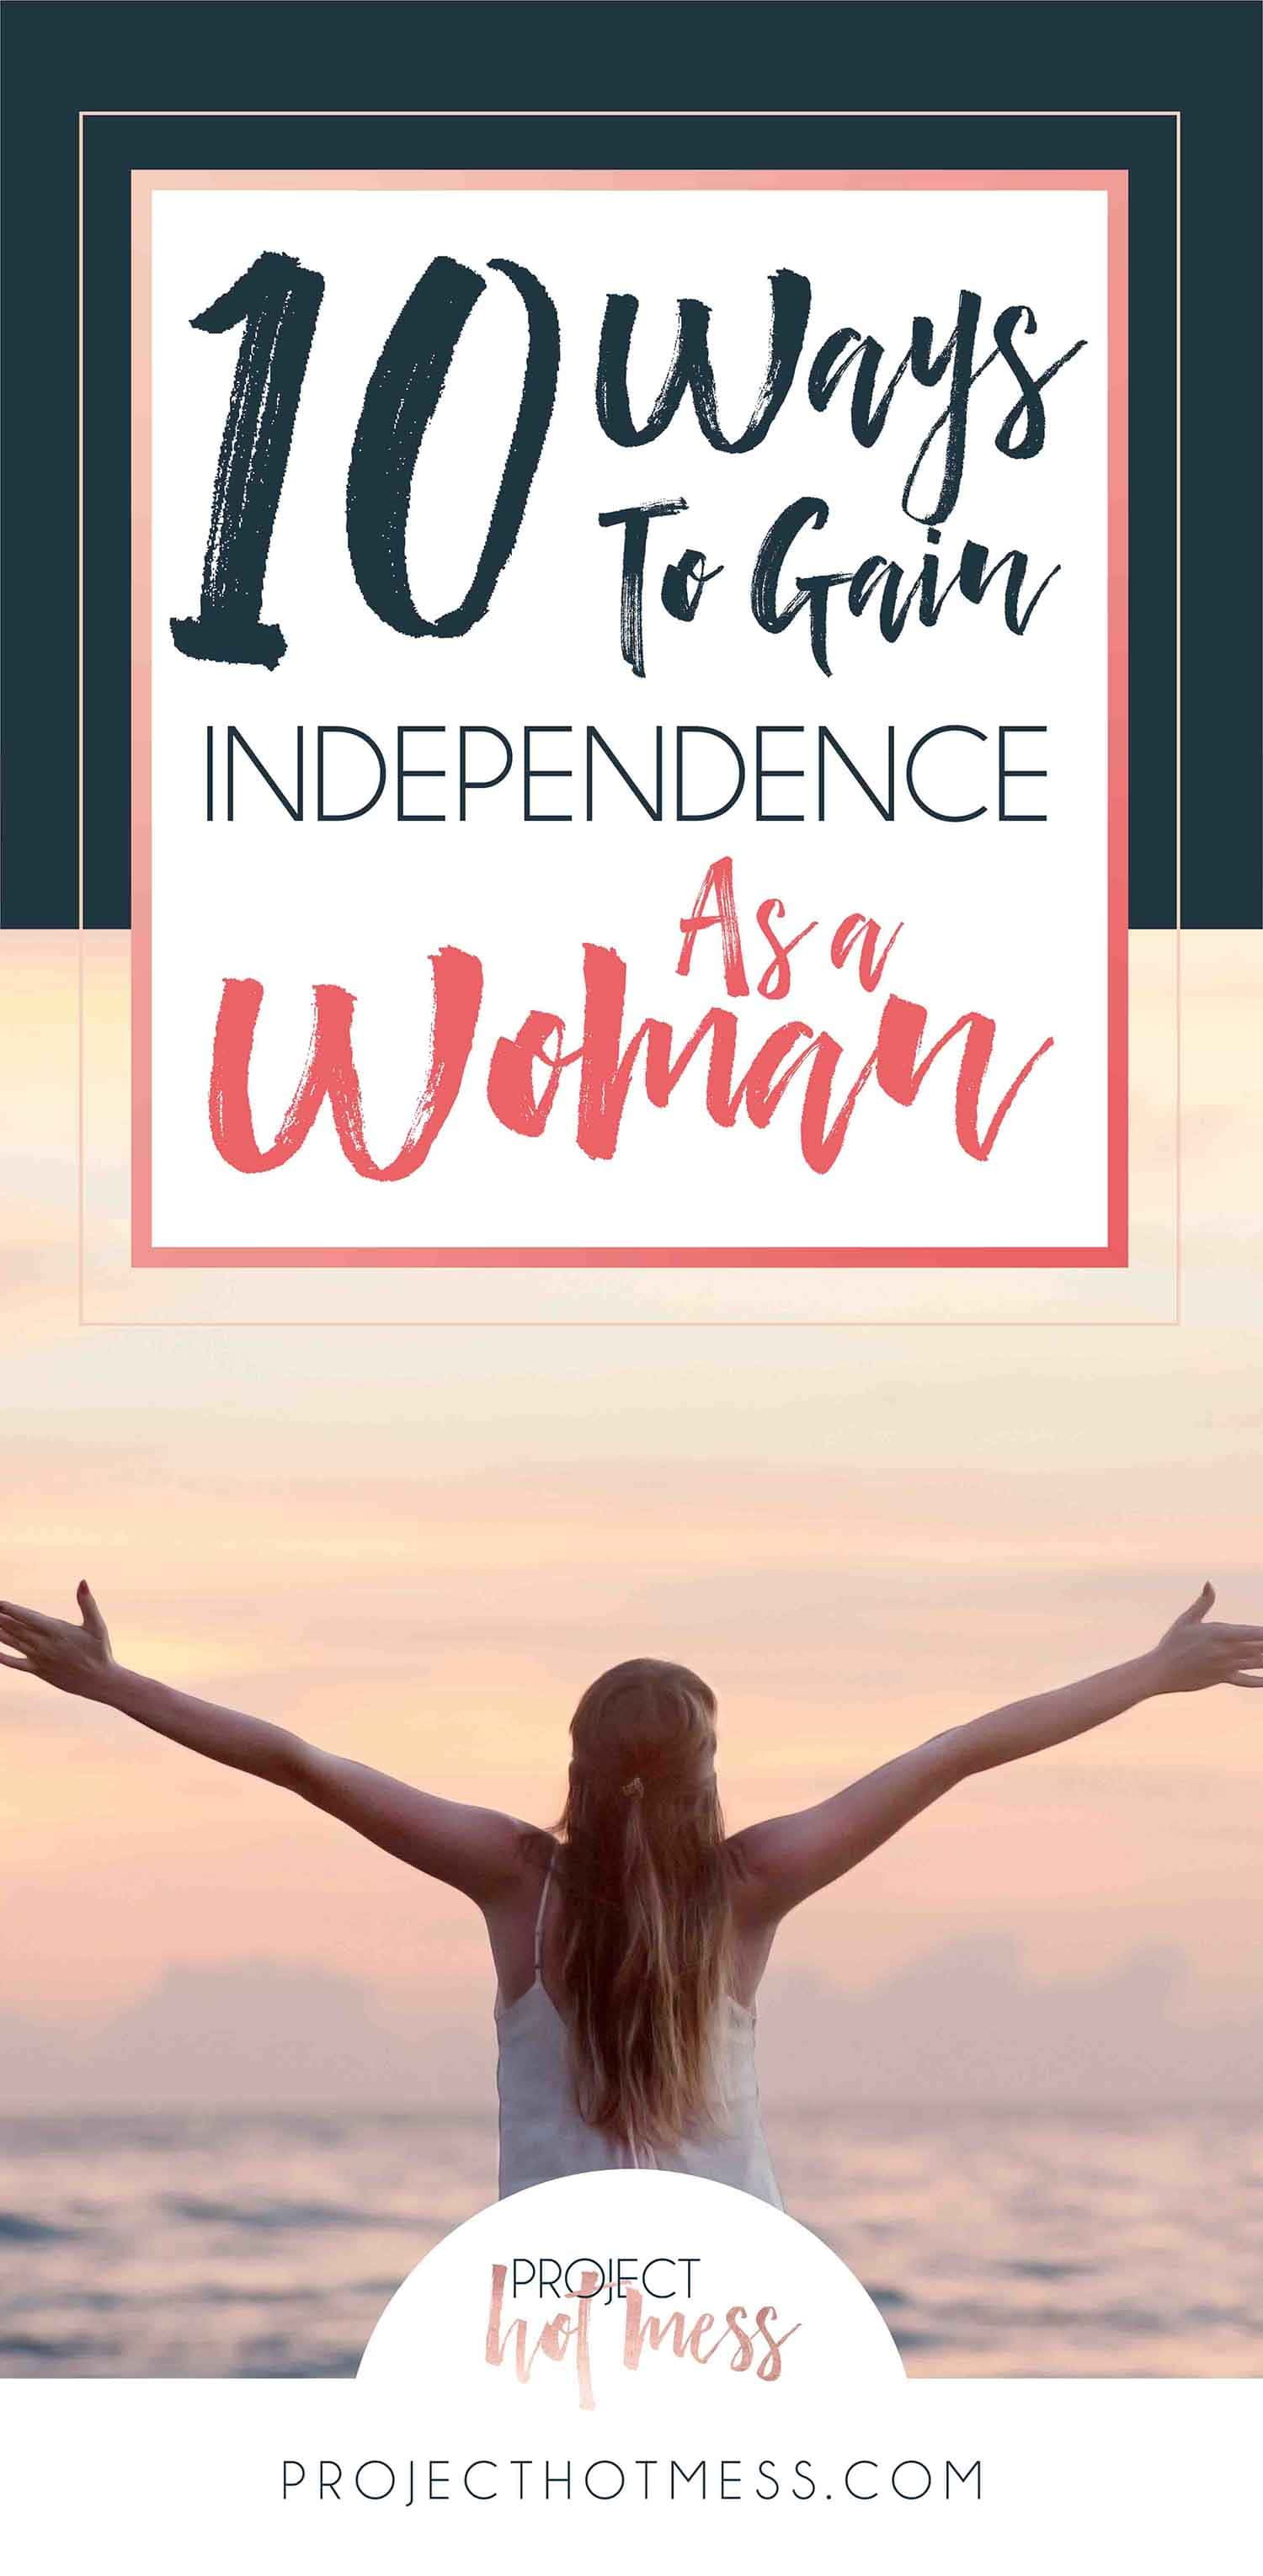 Want to be independent and stop relying so much on others? We've got you covered with these ways to gain independence as a woman and kick ass doing it! Sometimes you just have to blow your own darn mind!